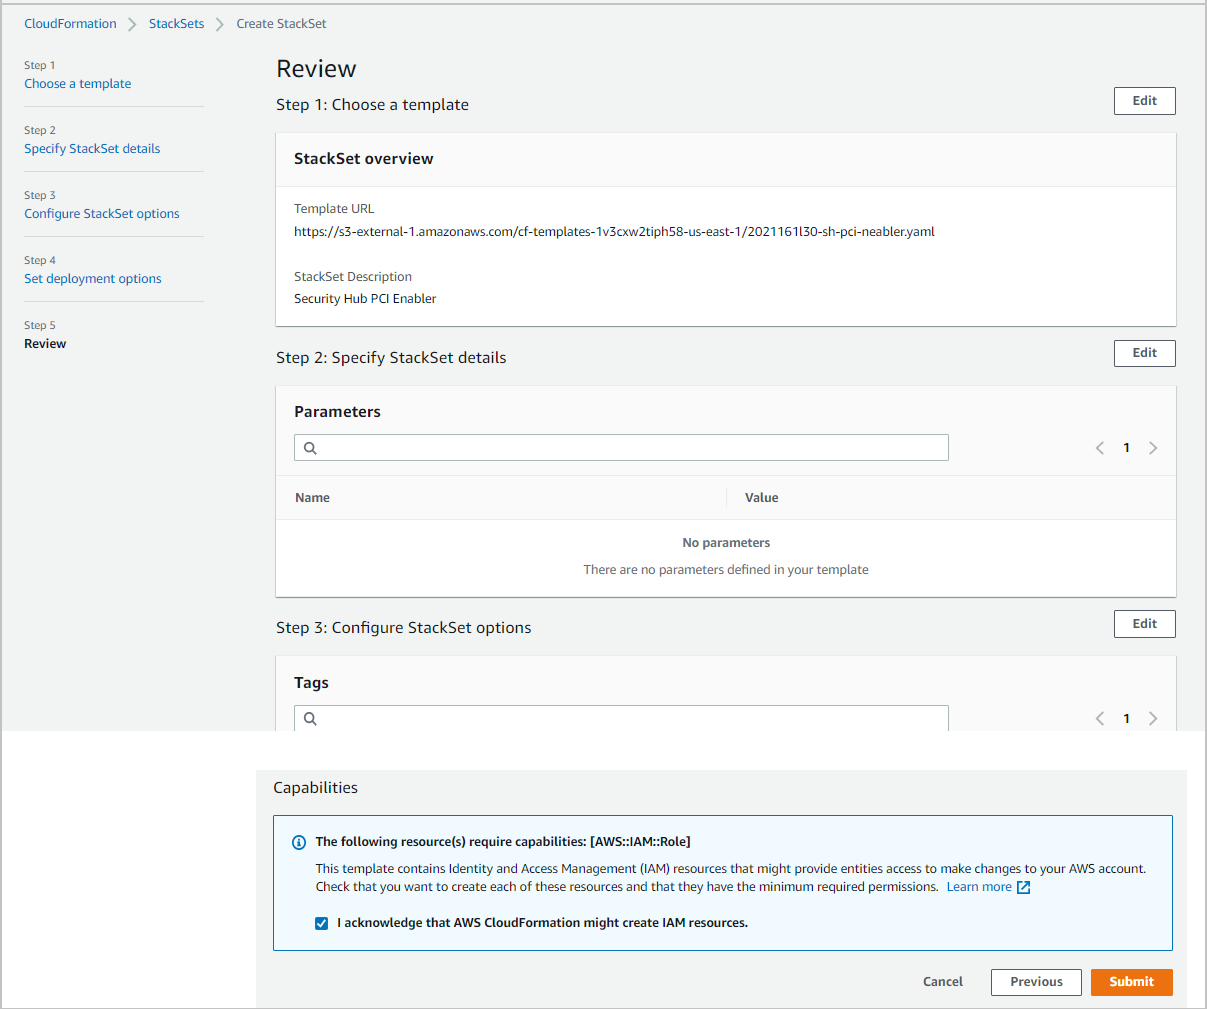 Figure 7: CloudFormation – Review, acknowledge, and submit